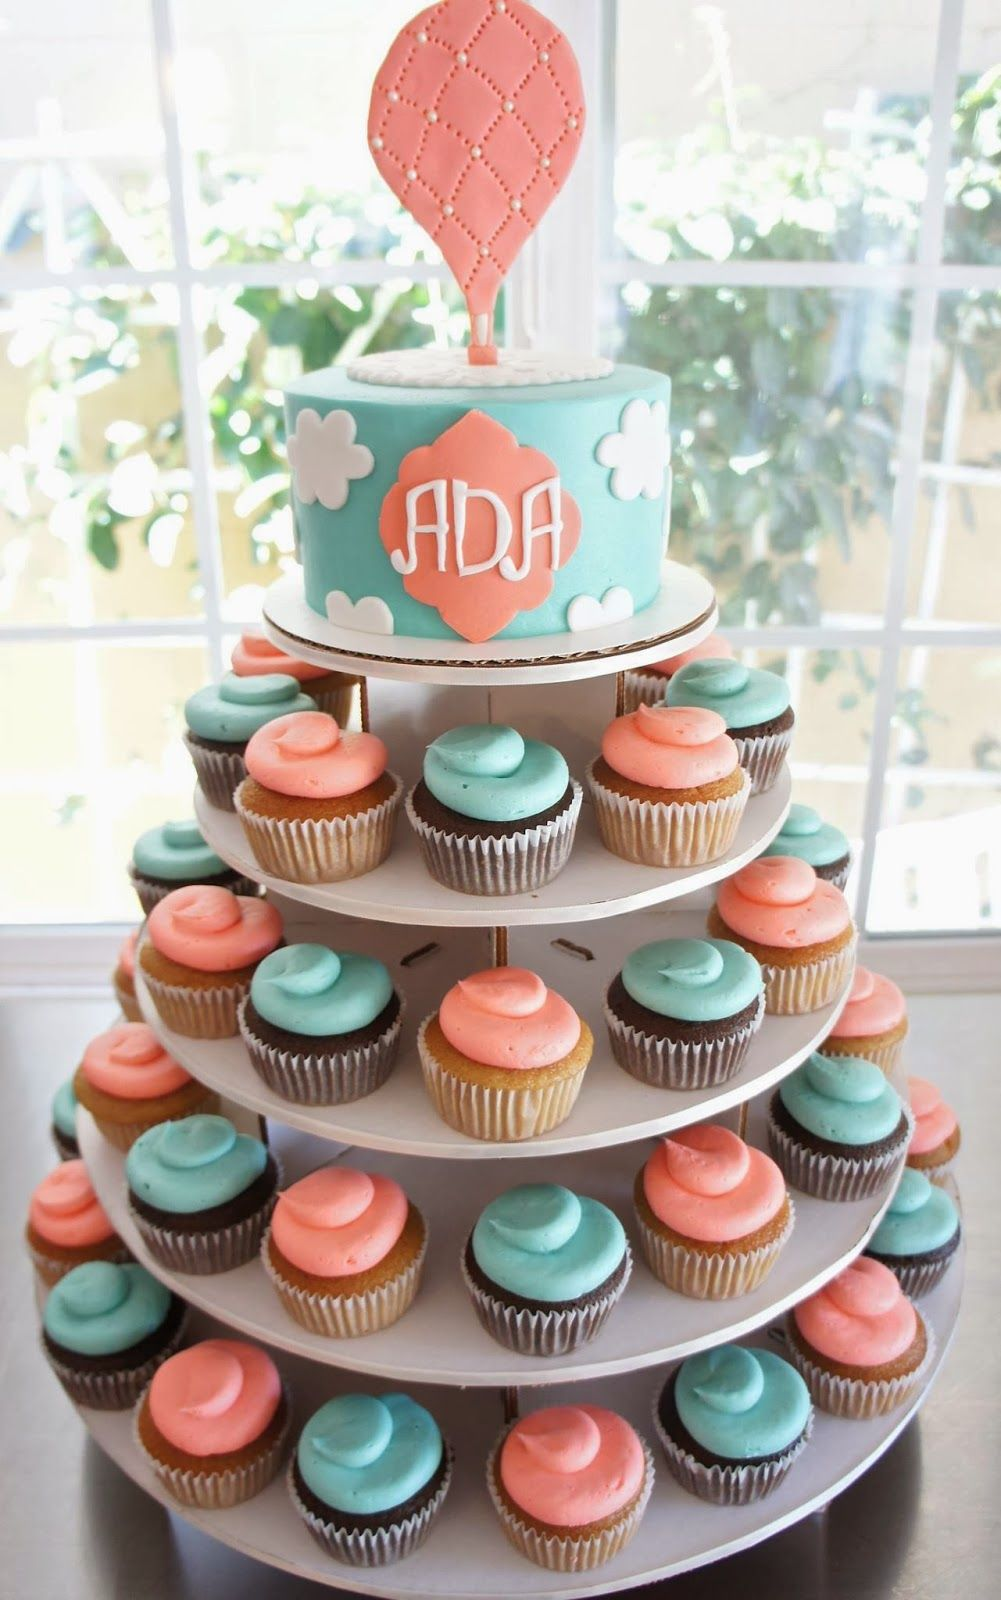 HOT AIR BALLOON CAKE & CUPCAKES TOWER by Half Baked Co. # ...